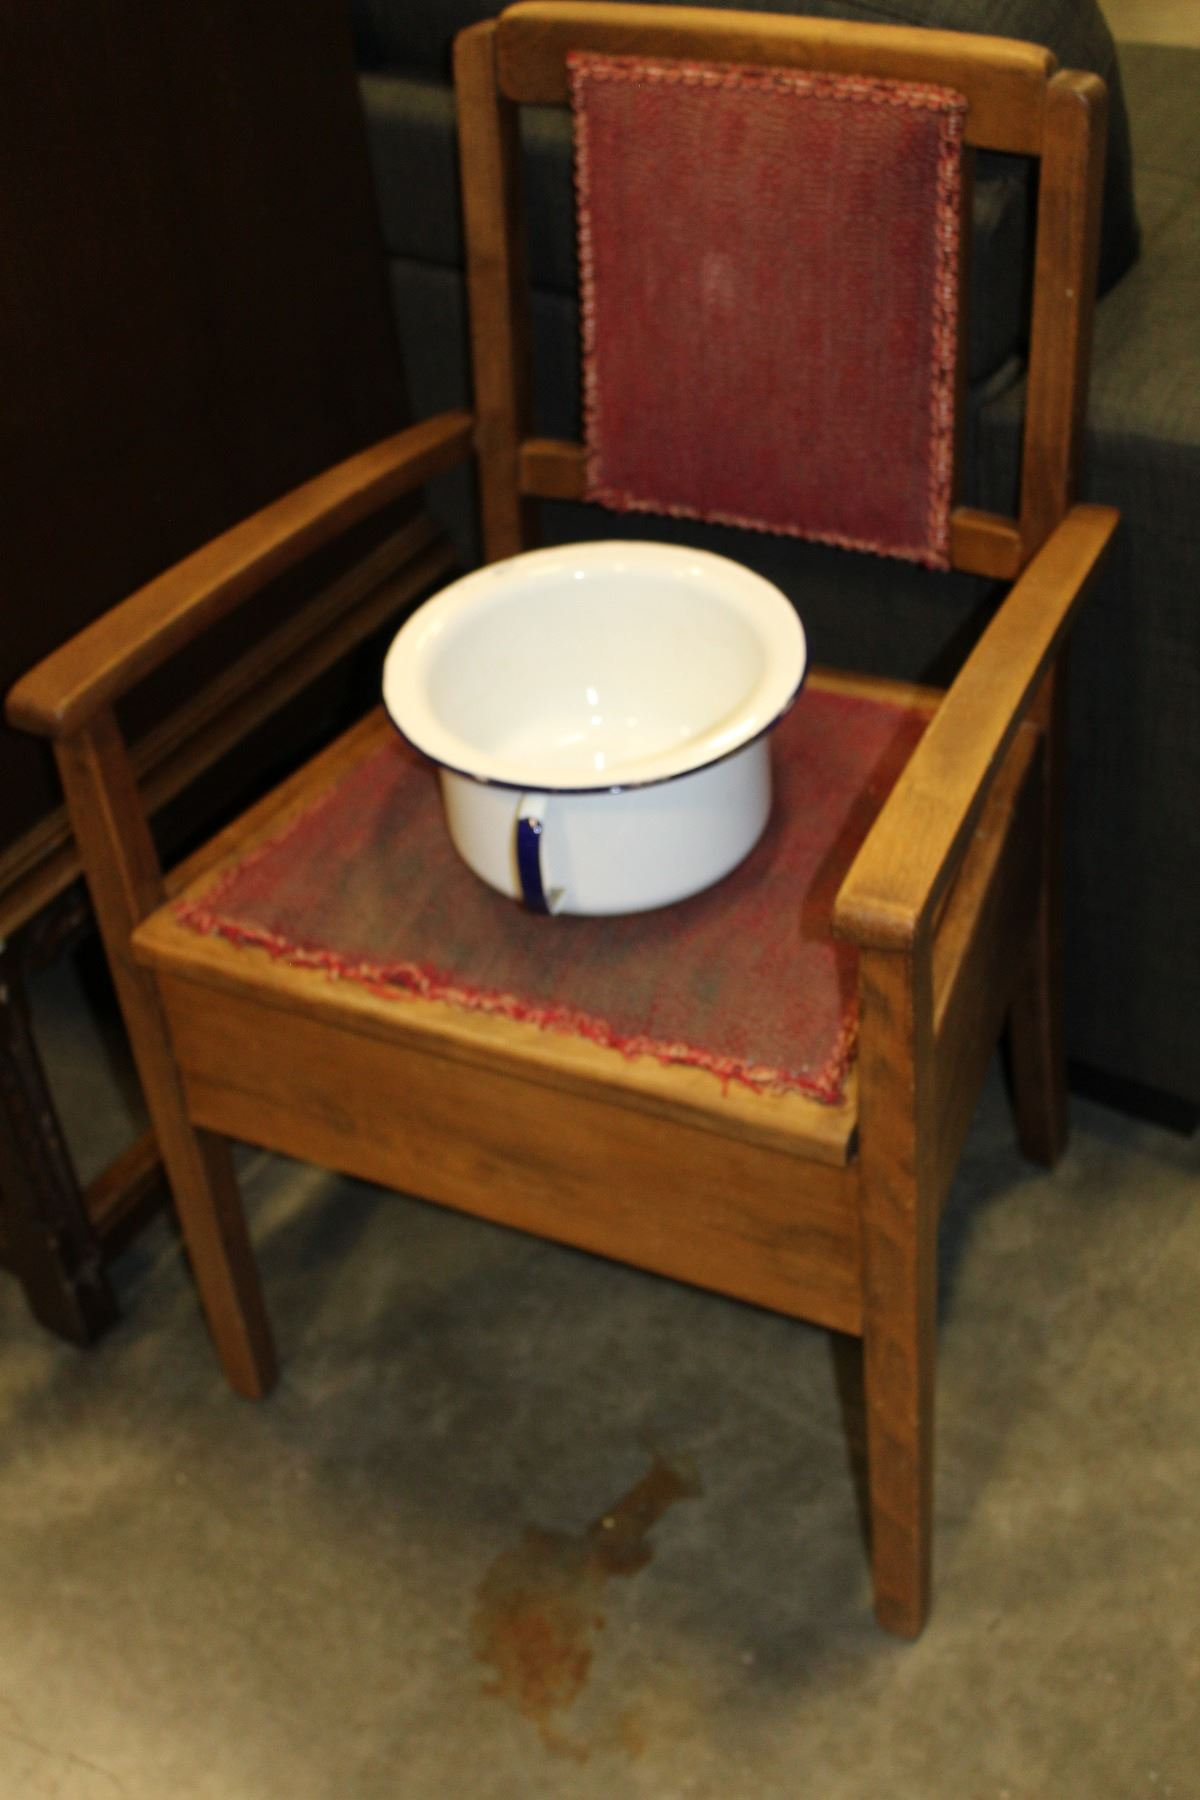 Image 1 : VINTAGE POTTY CHAIR AND CHAMBER POT ... - VINTAGE POTTY CHAIR AND CHAMBER POT